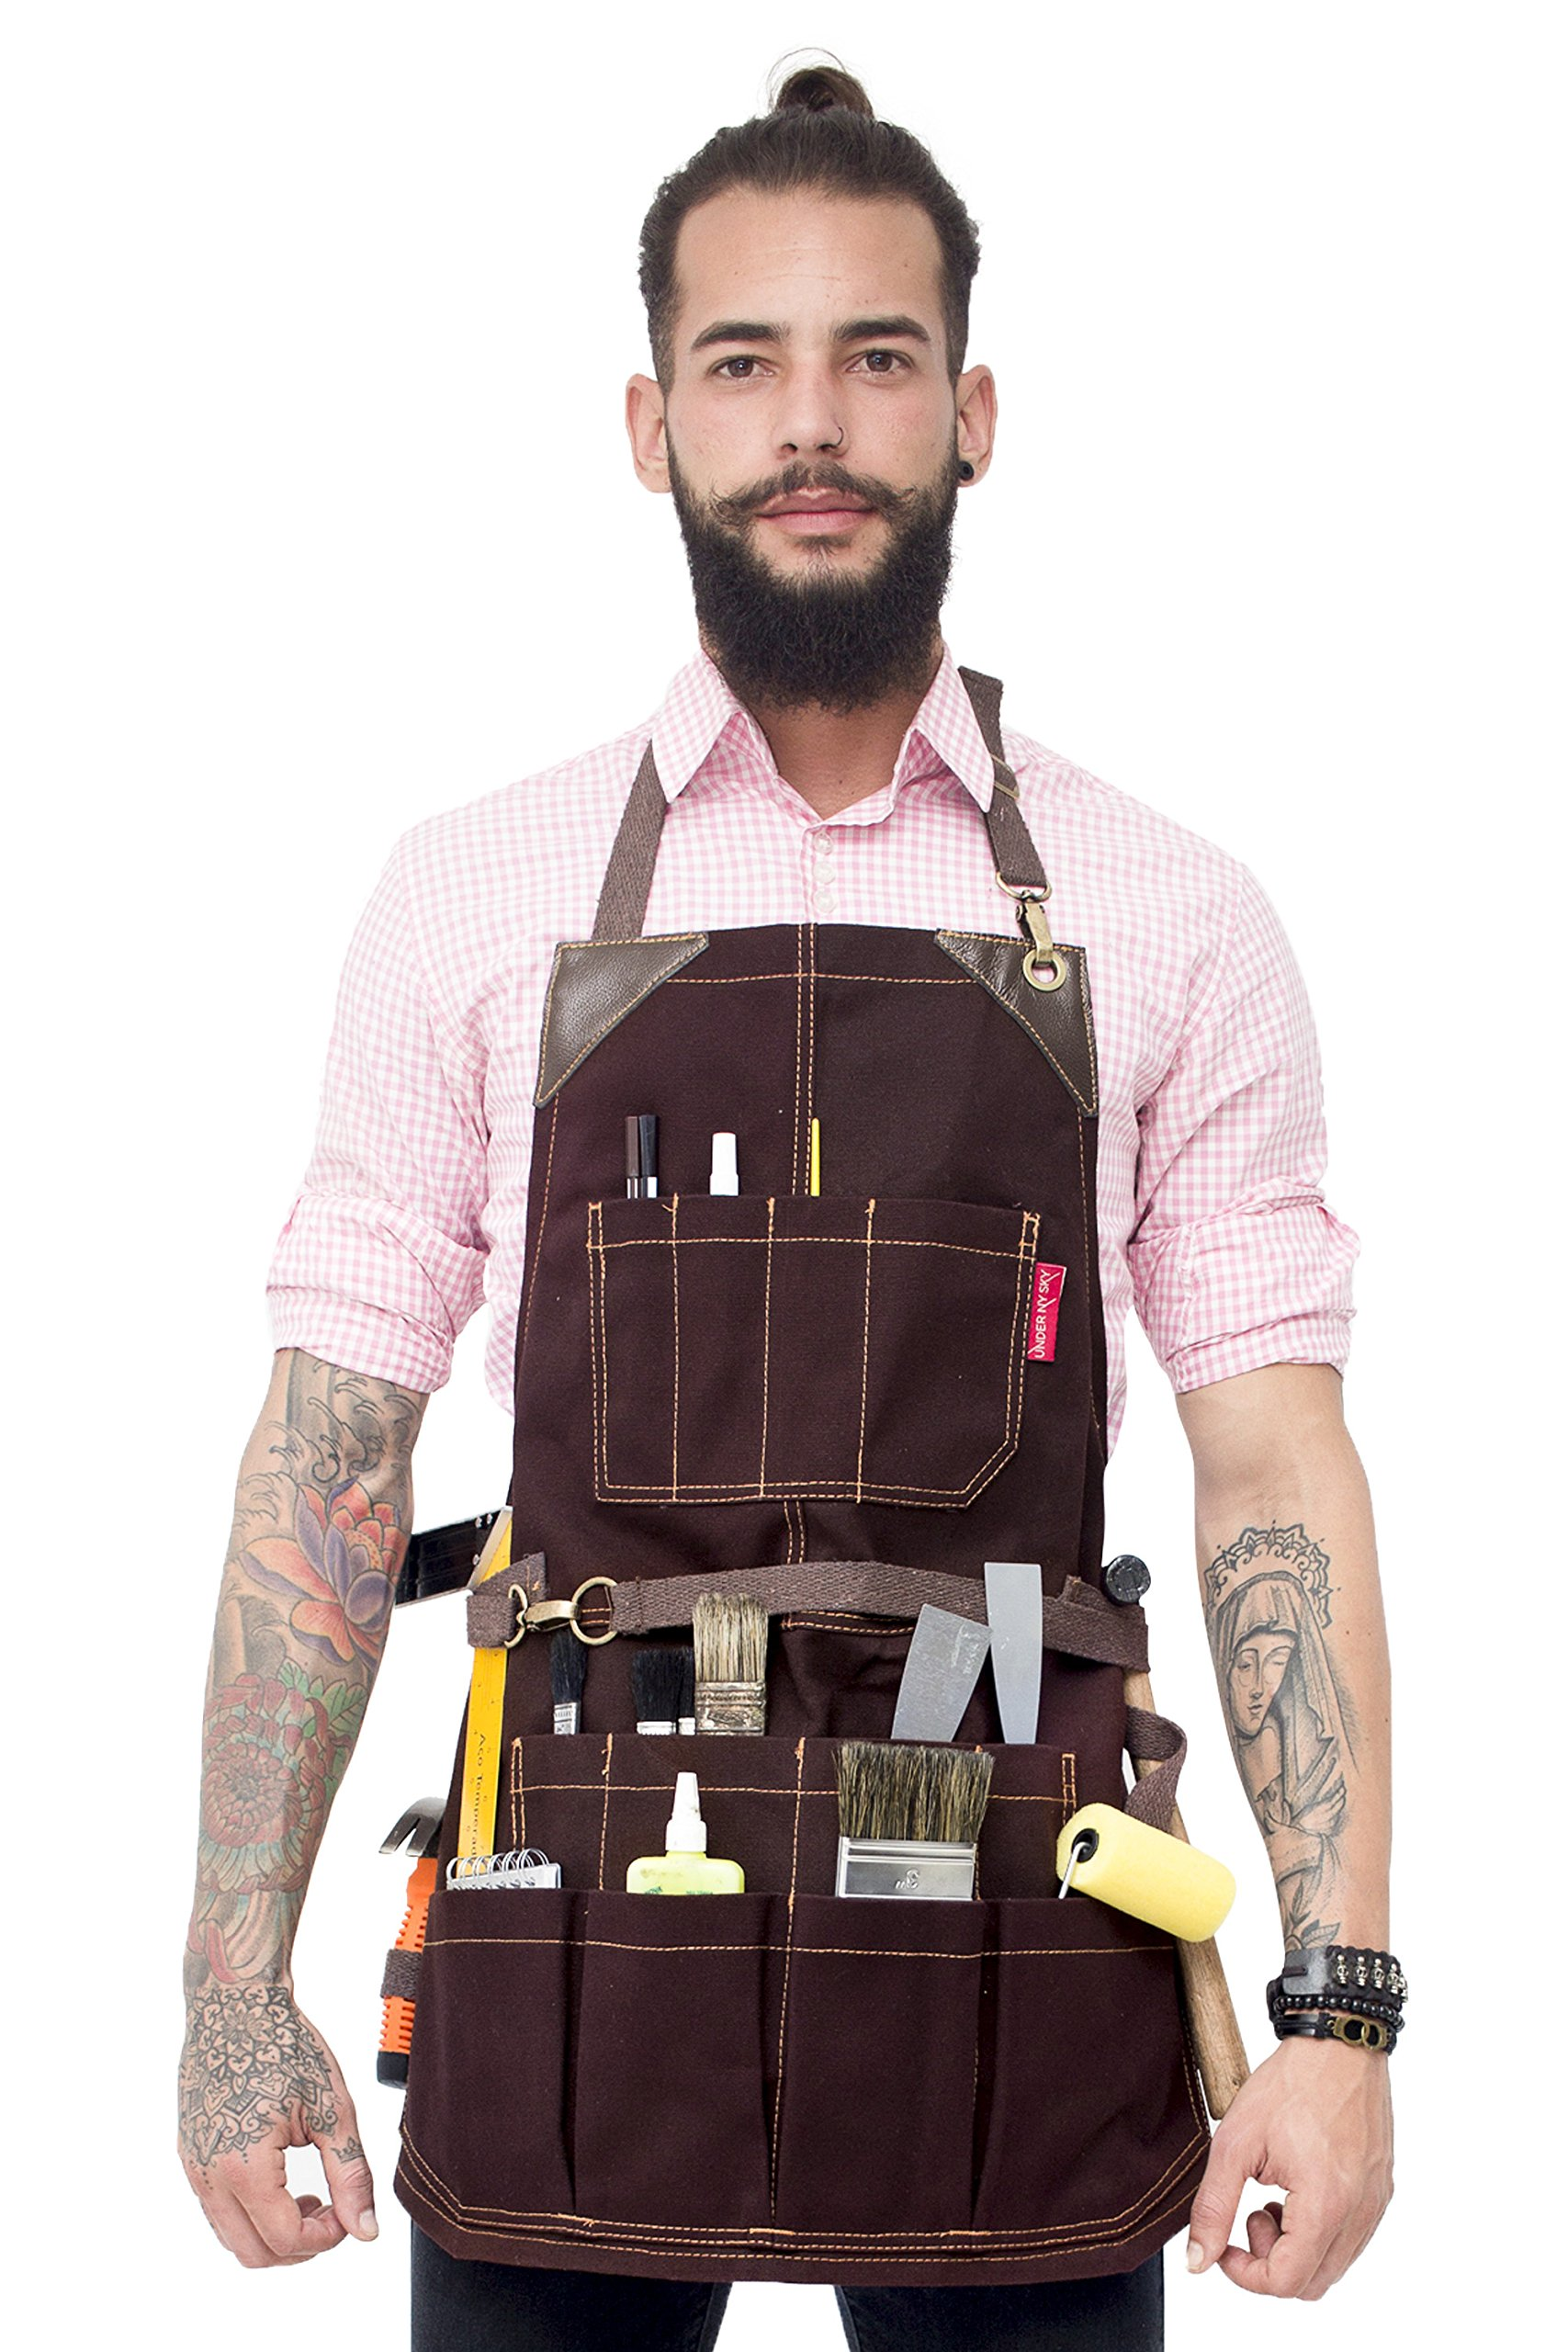 Under NY Sky Tool Brown Apron – Heavy-Duty Waxed Canvas, Leather Reinforcement, Extra Pockets – Adjustable for Men and Women – Pro Mechanic, Woodworker, Blacksmith, Plummer, Electrician, Welder Aprons